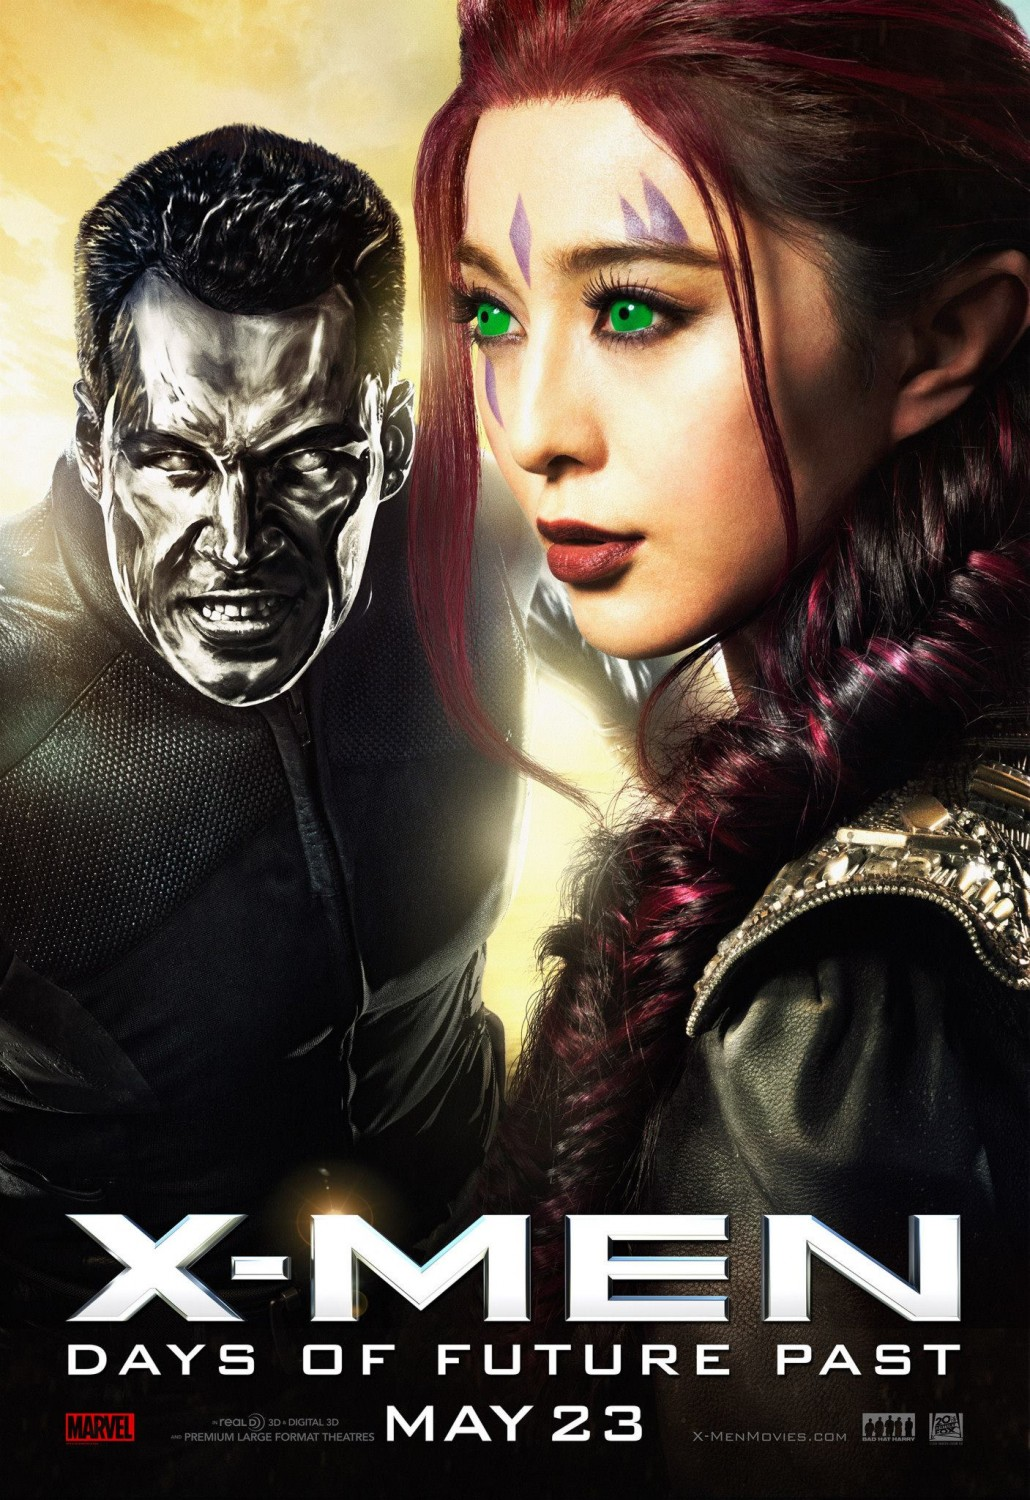 x-men-days-of-future-past-2014-movie-poster-2 | selig film news